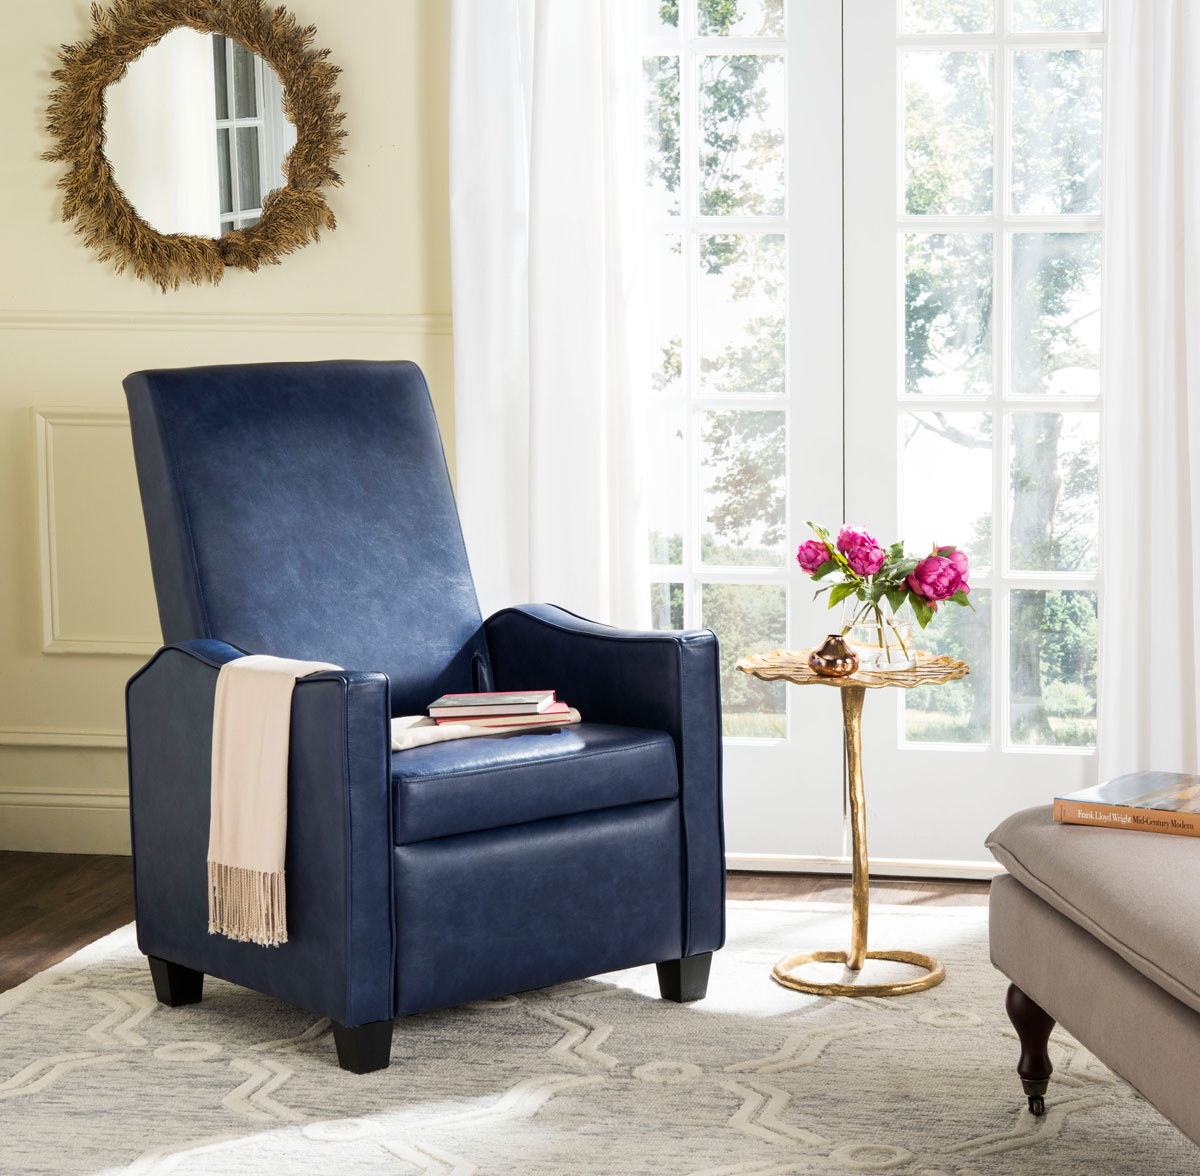 FOX6208D Recliners - Furniture by Safavieh